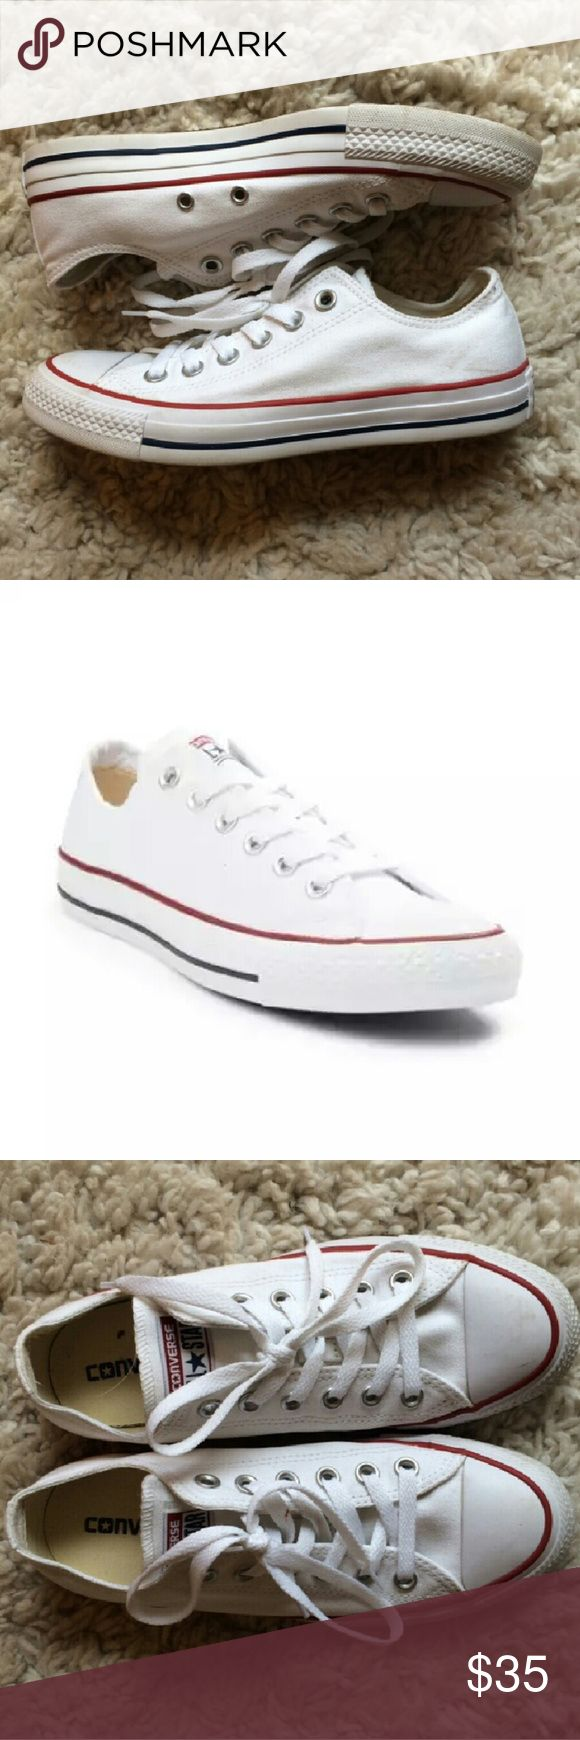 Converse Chuck Taylor All Star Lo Sneaker NEVER WORN classic all white Chuck Taylors with blue and red stripe on sole. Mint condition. Mens size 5.5, womens 7.5  Comment with any questions!?? Converse Shoes Sneakers